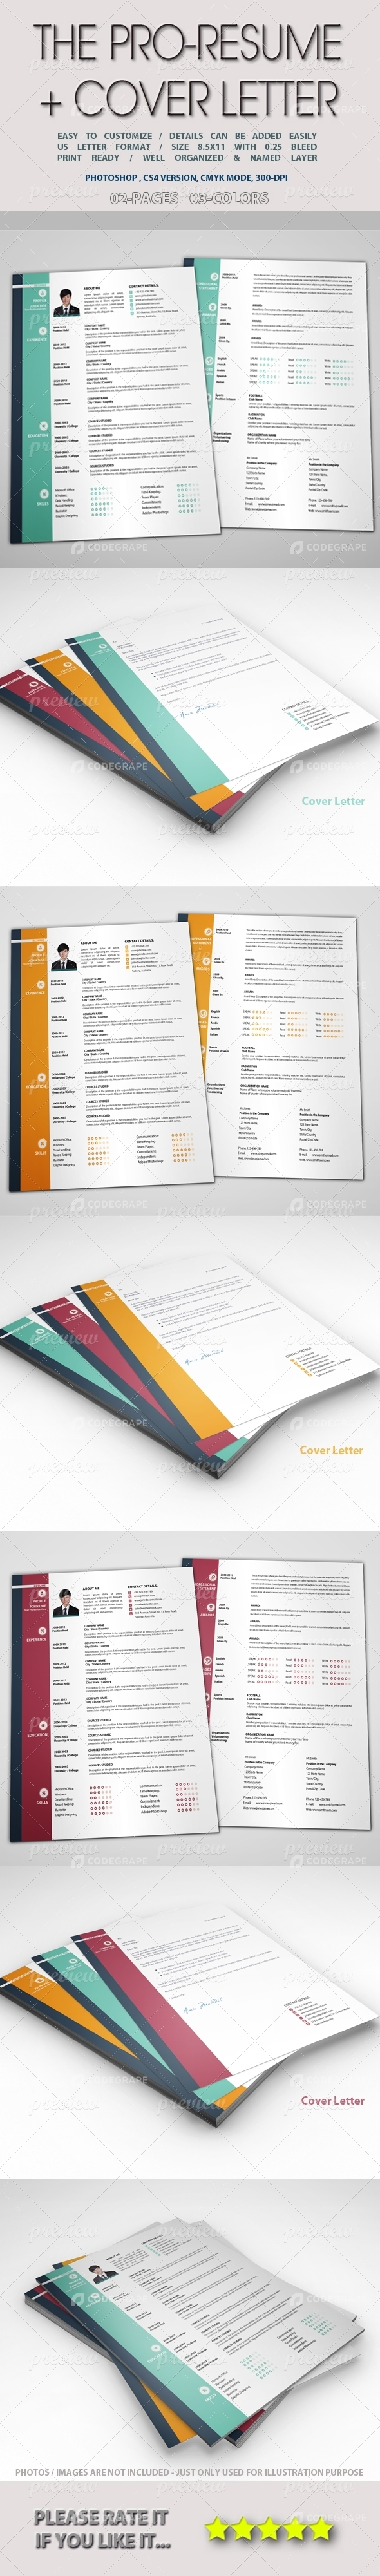 The Pro-Resume + Cover Letter